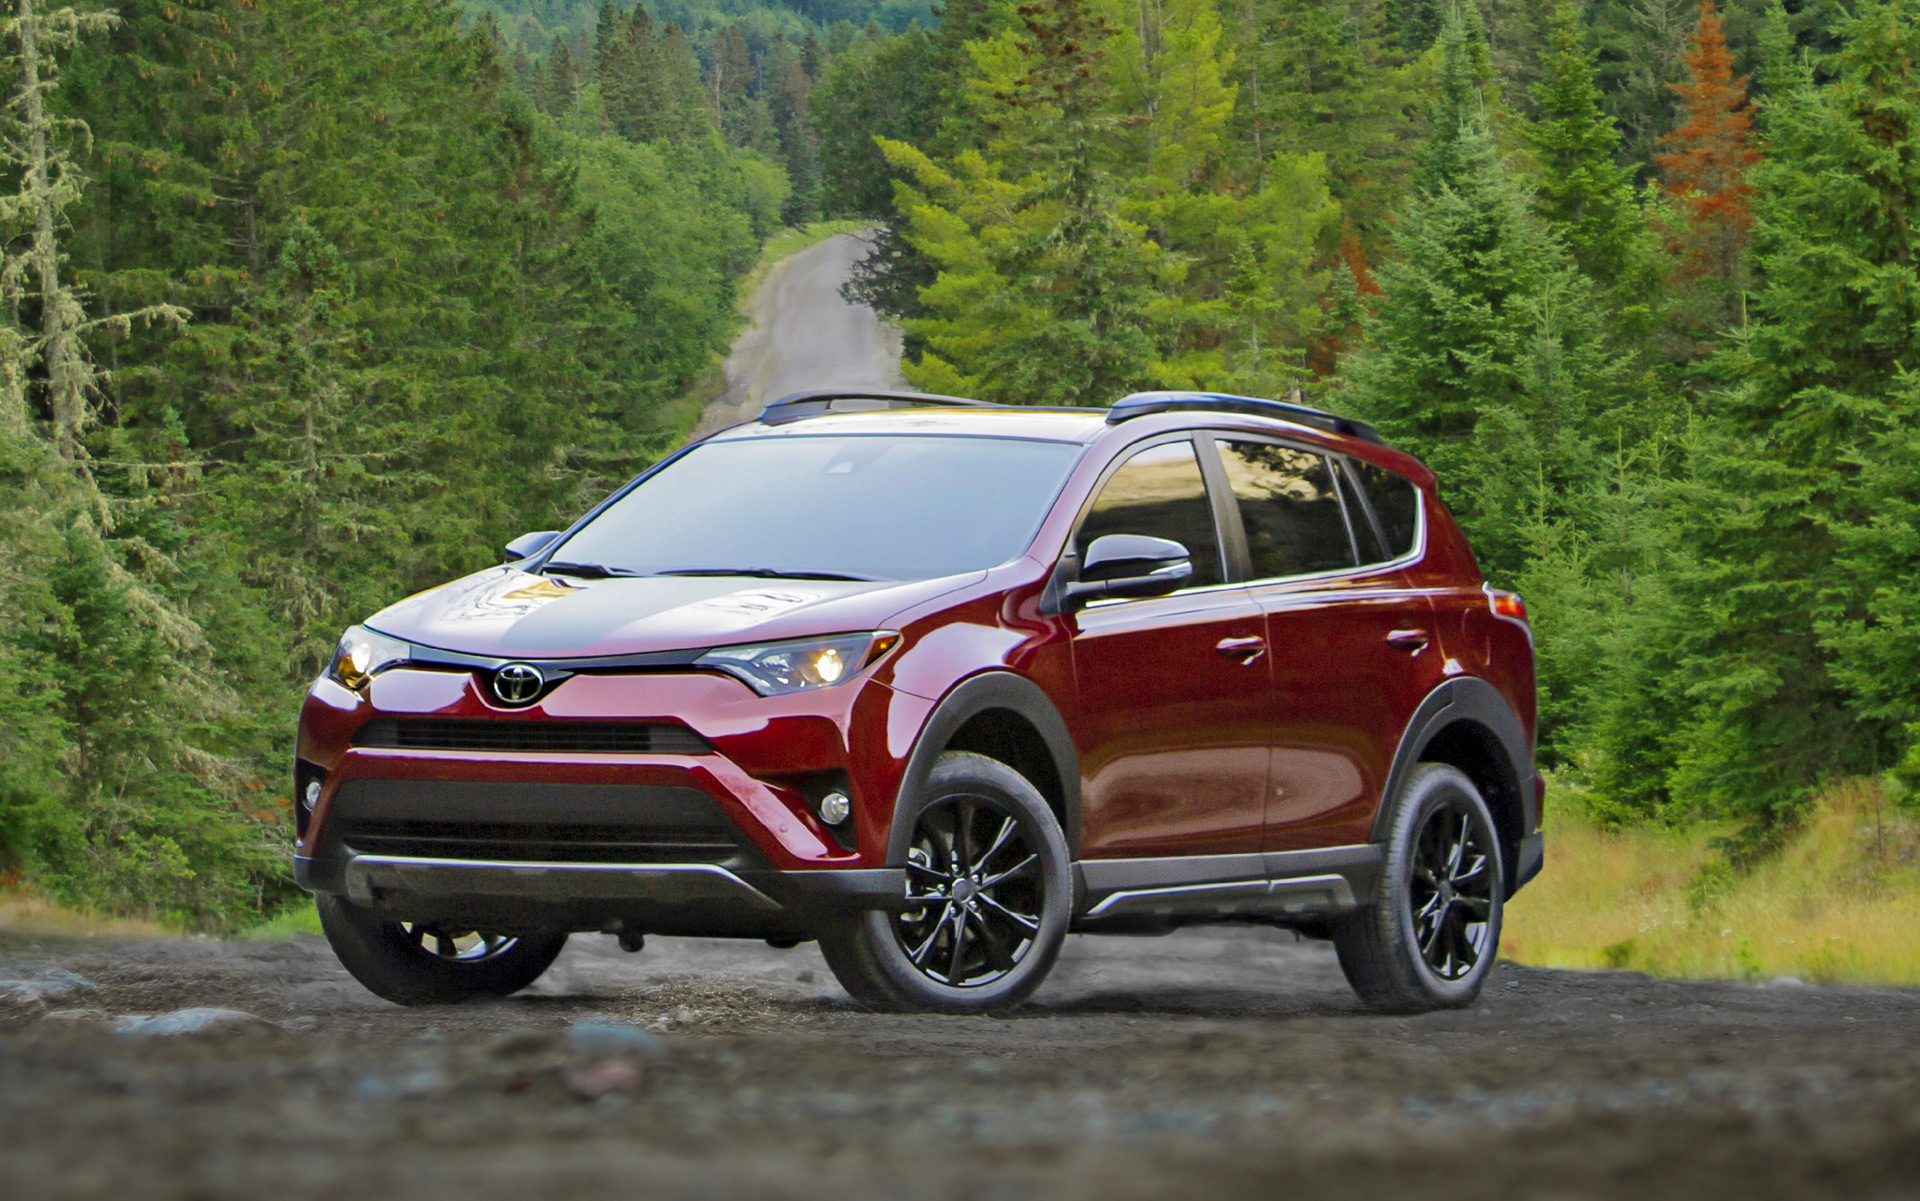 new and used toyota rav4 prices photos reviews specs the car connection. Black Bedroom Furniture Sets. Home Design Ideas